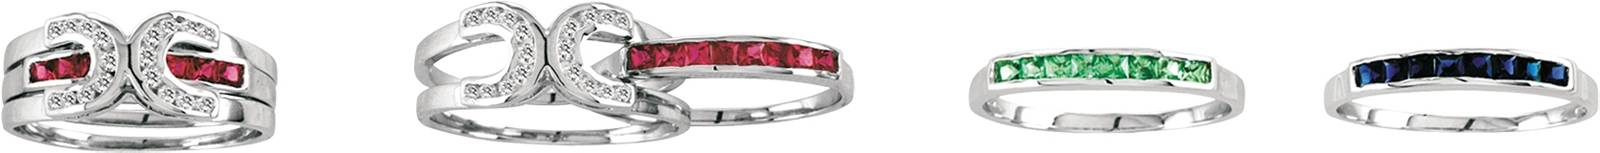 Kelly Herd Interchangeable Horseshoe Ring